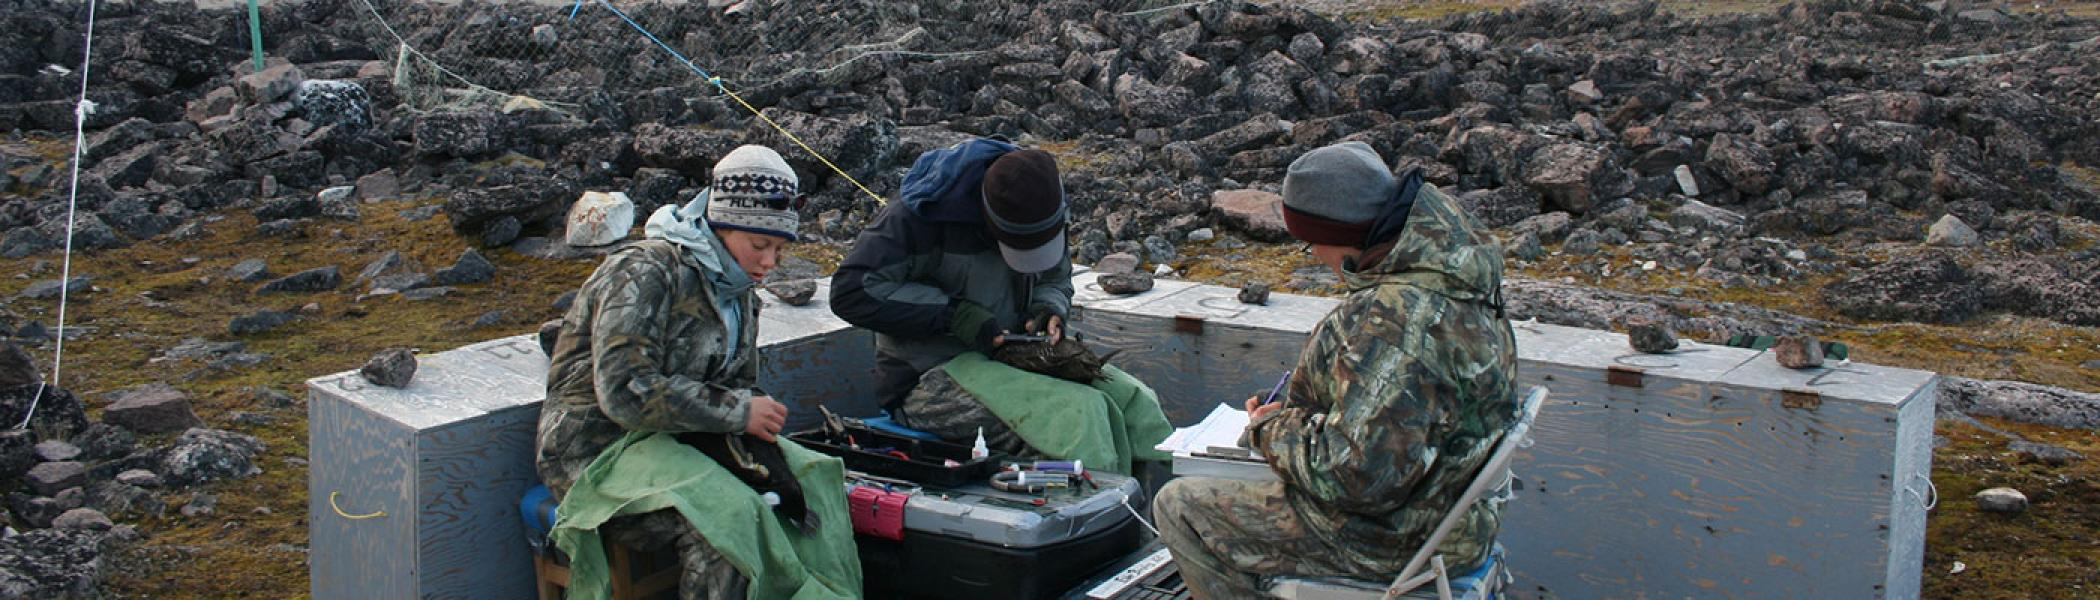 3 students doing fieldwork sitting together recording data / results wearing hats and warm clothing